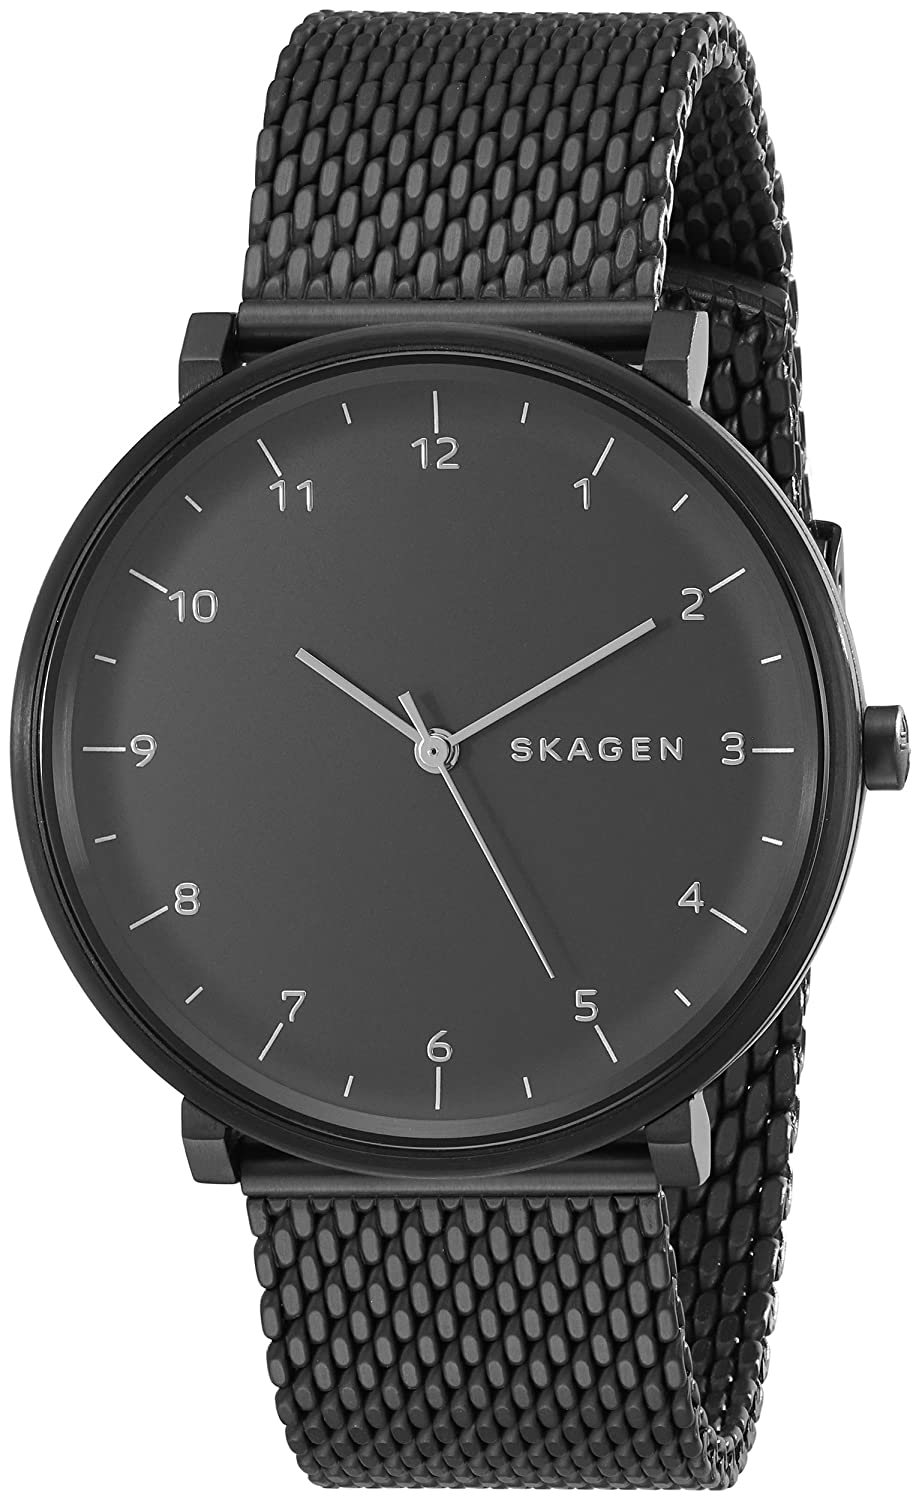 81KhYXeHU8L._UL1500_ Are Skagen Watches Good: Top 5 Watches Under 200